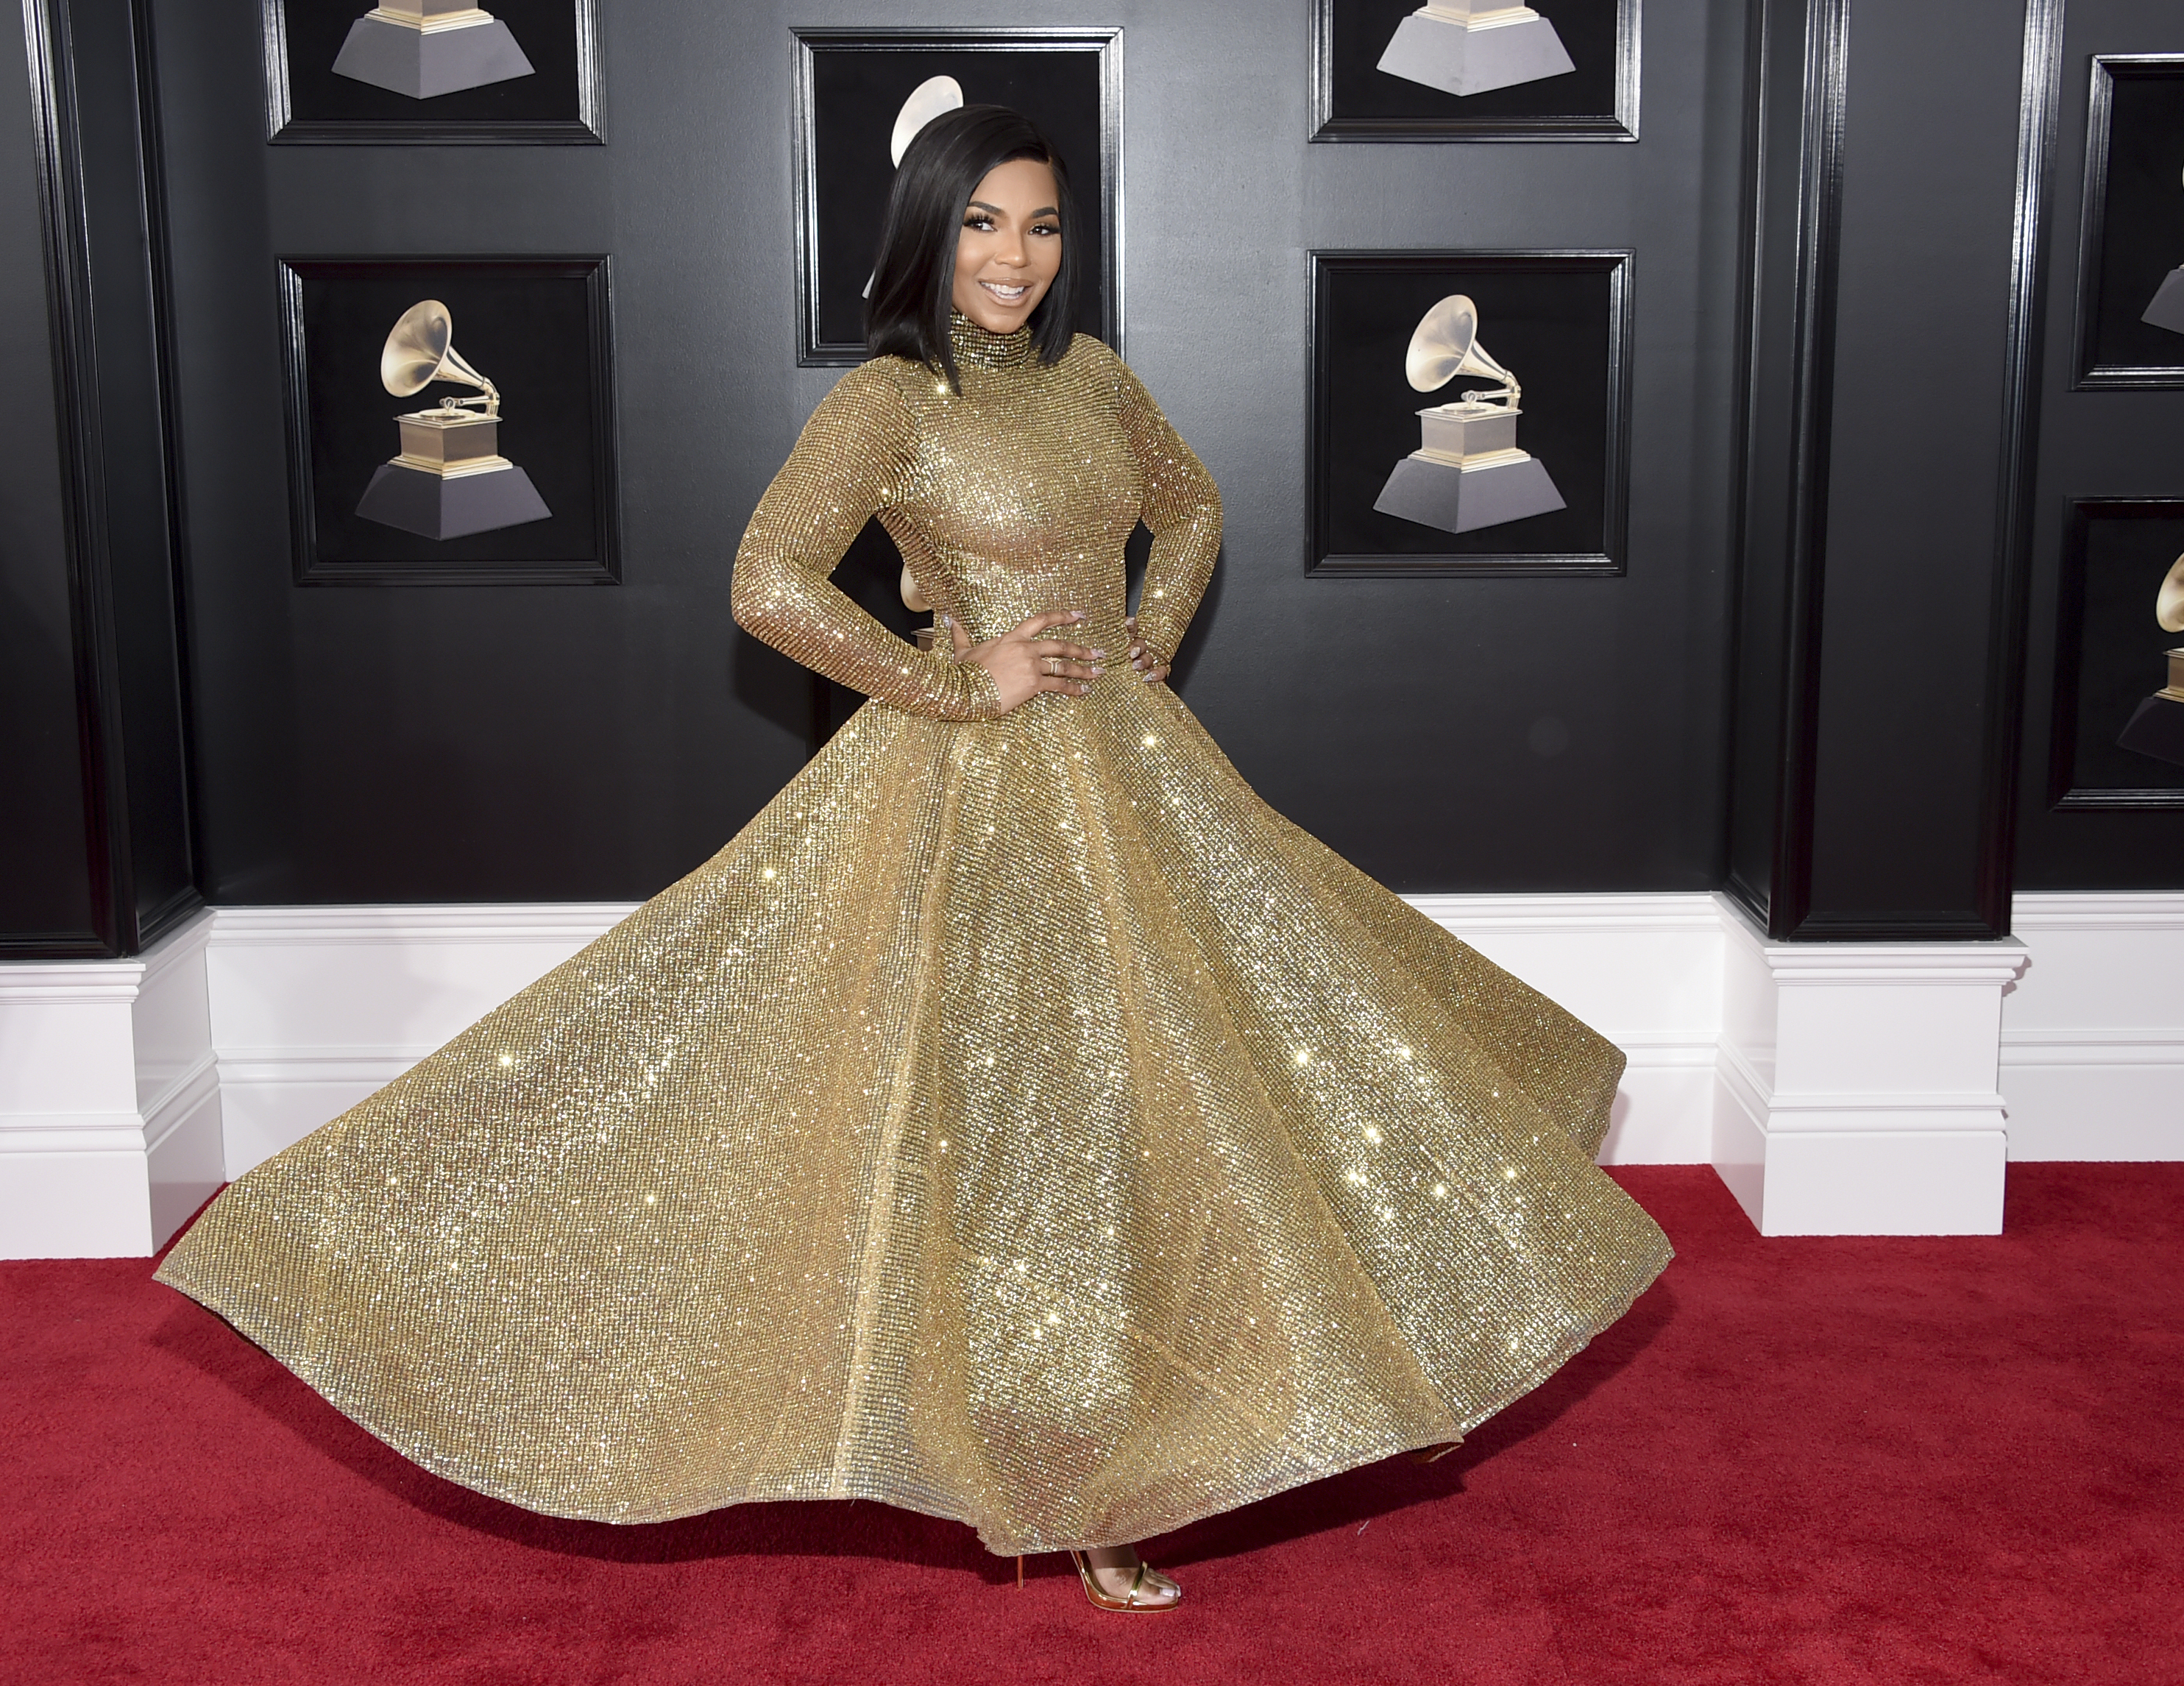 <div class='meta'><div class='origin-logo' data-origin='AP'></div><span class='caption-text' data-credit='Evan Agostini/Invision/AP'>Ashanti arrives at the 60th annual Grammy Awards at Madison Square Garden on Sunday, Jan. 28, 2018, in New York.</span></div>